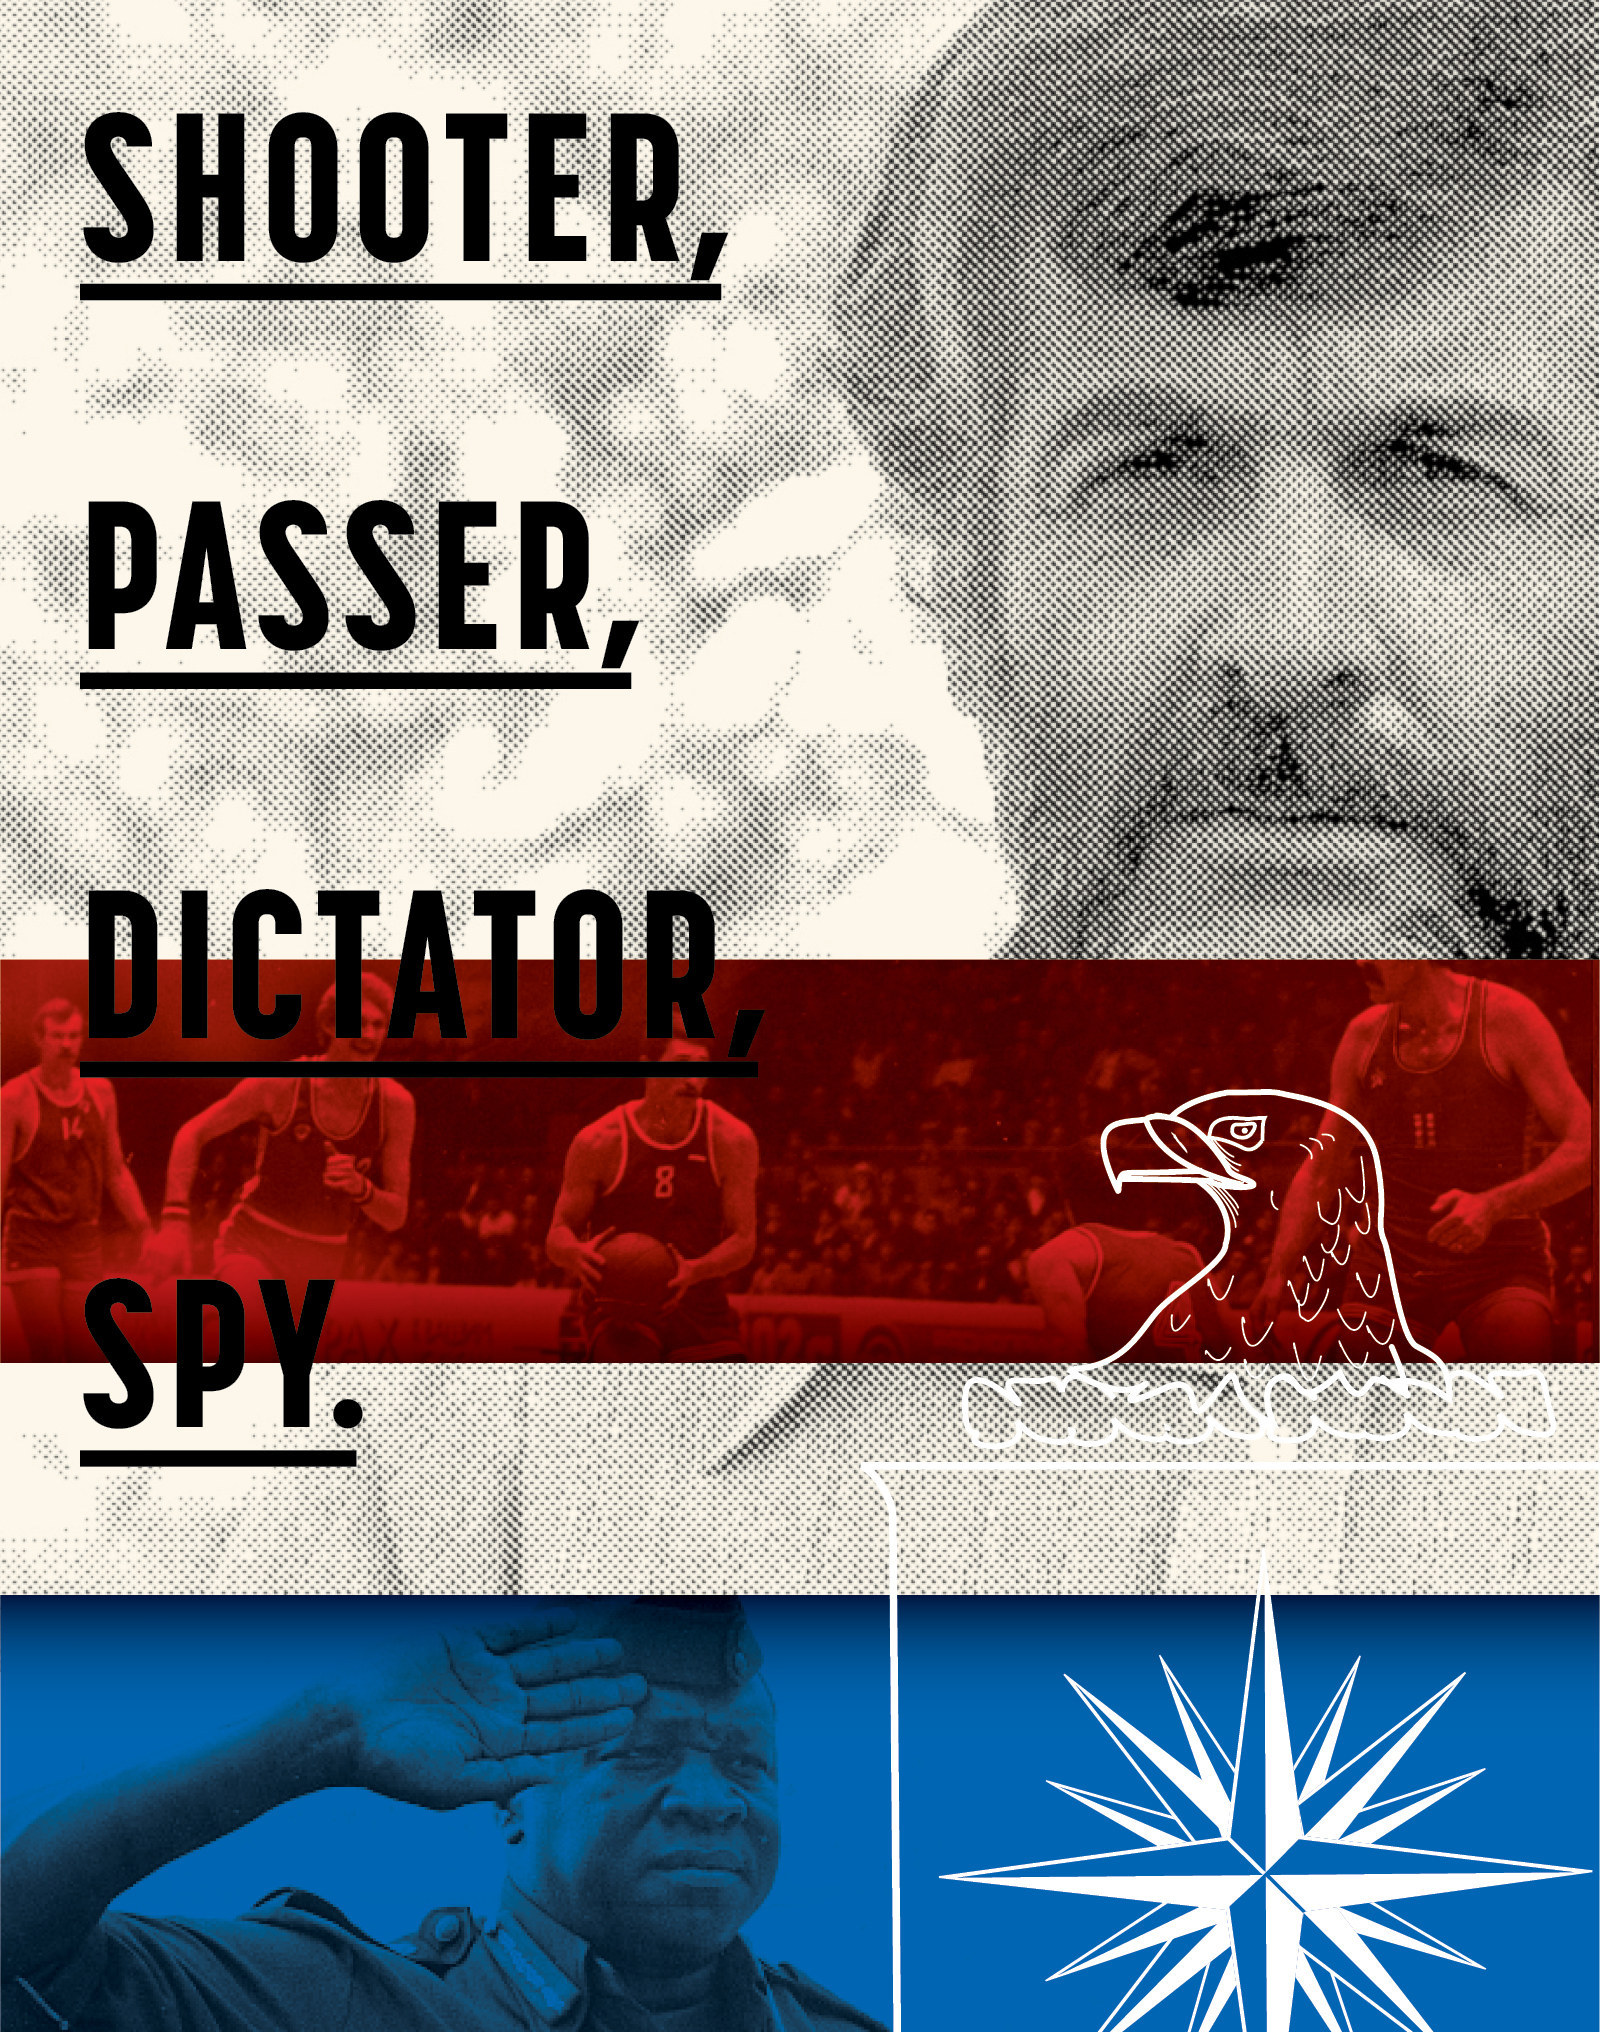 Shooter, Passer, Dictator, Spy: The Lost, True Story Of The CIA's Greatest Basketball Coach